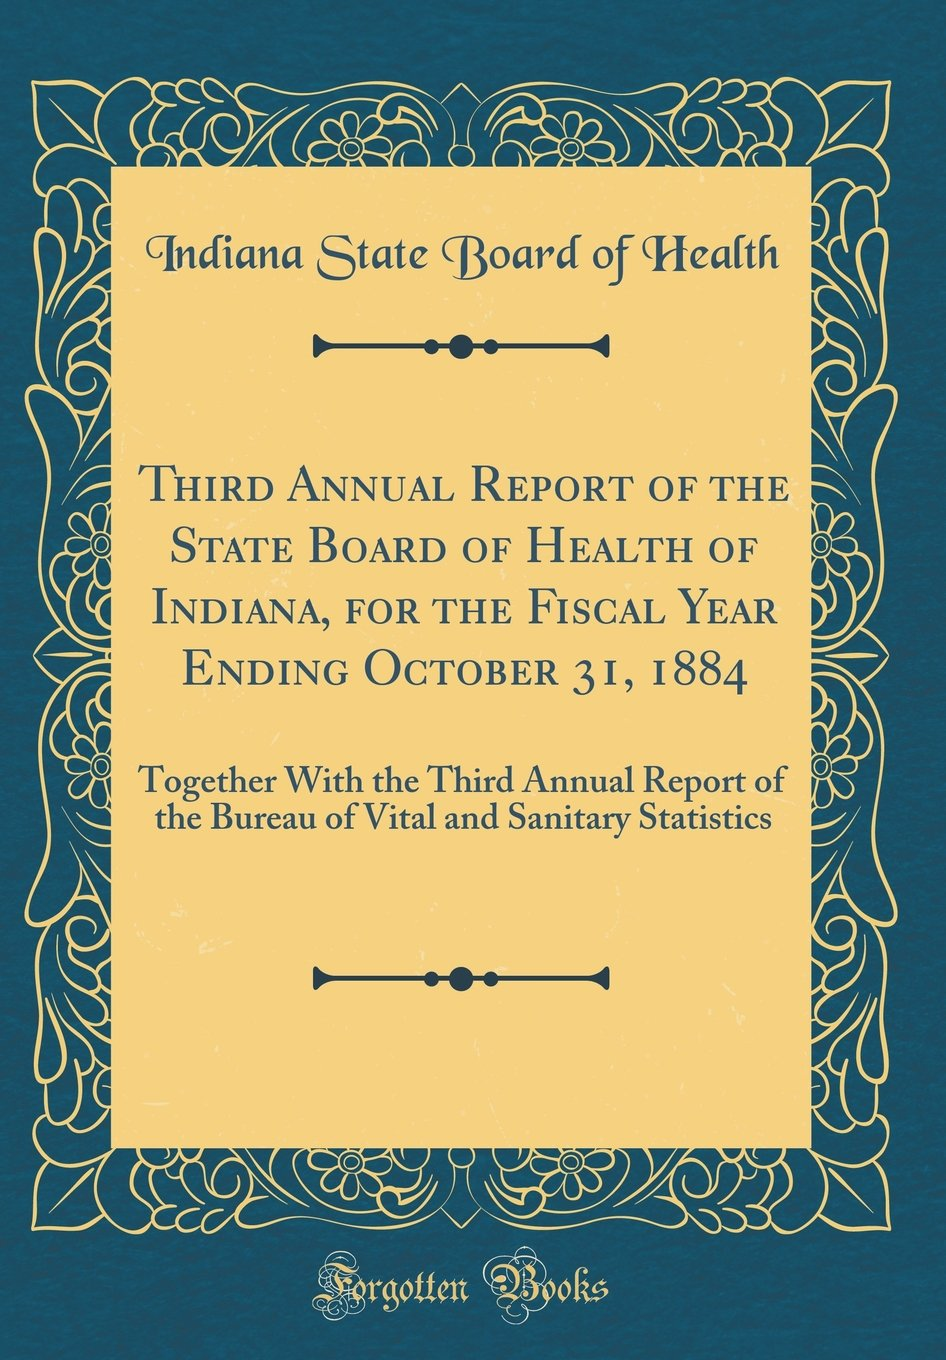 Third Annual Report of the State Board of Health of Indiana, for the Fiscal Year Ending October 31, 1884: Together with the Third Annual Report of the ... and Sanitary Statistics (Classic Reprint) pdf epub